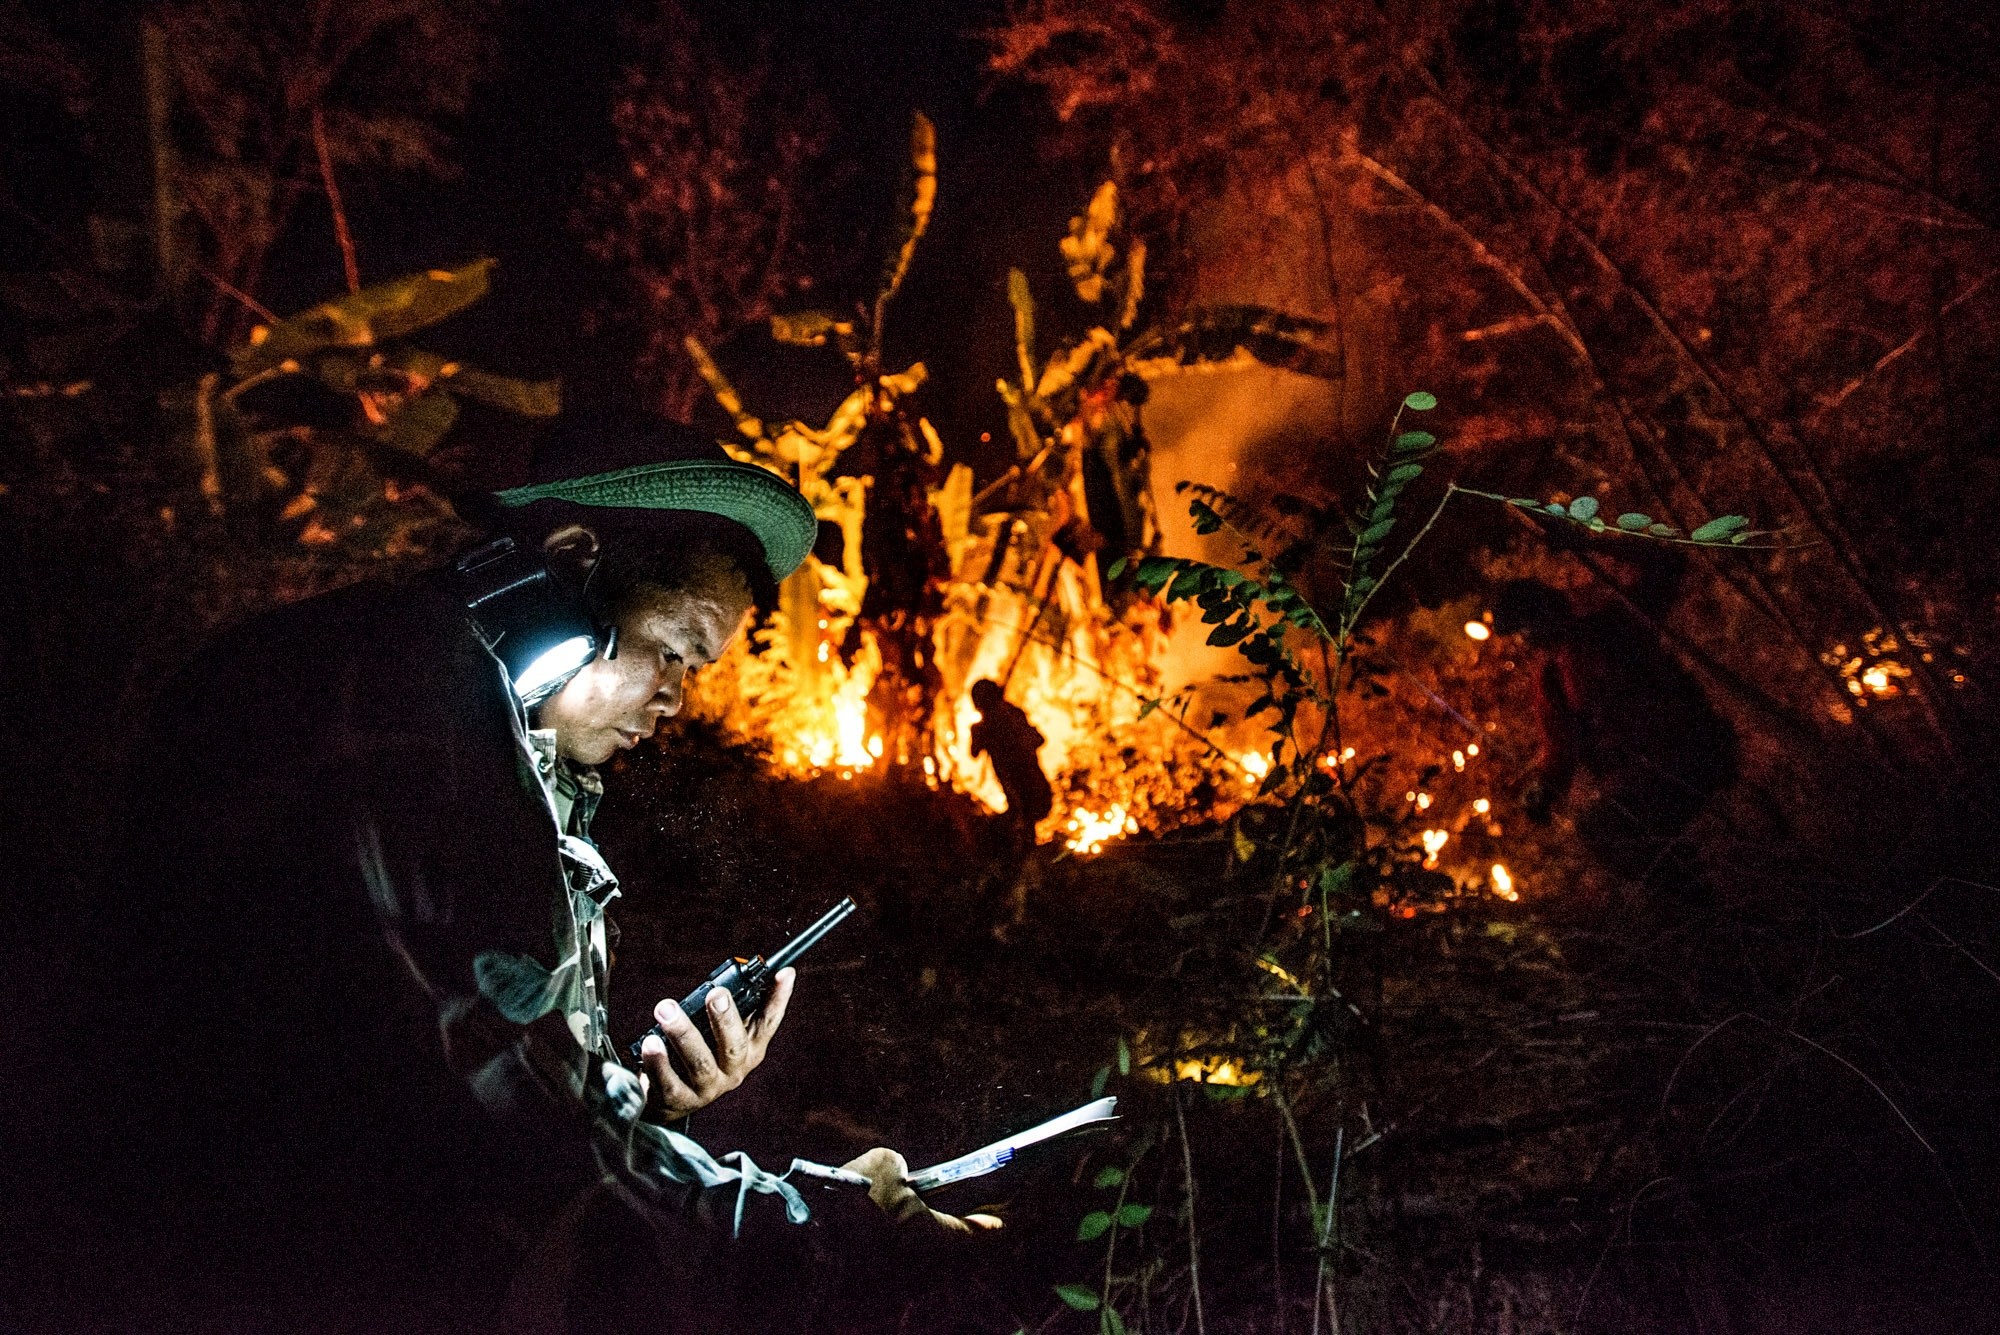 Fire fighters at work battling to put out the forest fires at night which had been reported by villagers. Mae On, Chiang Mai, Thailand.